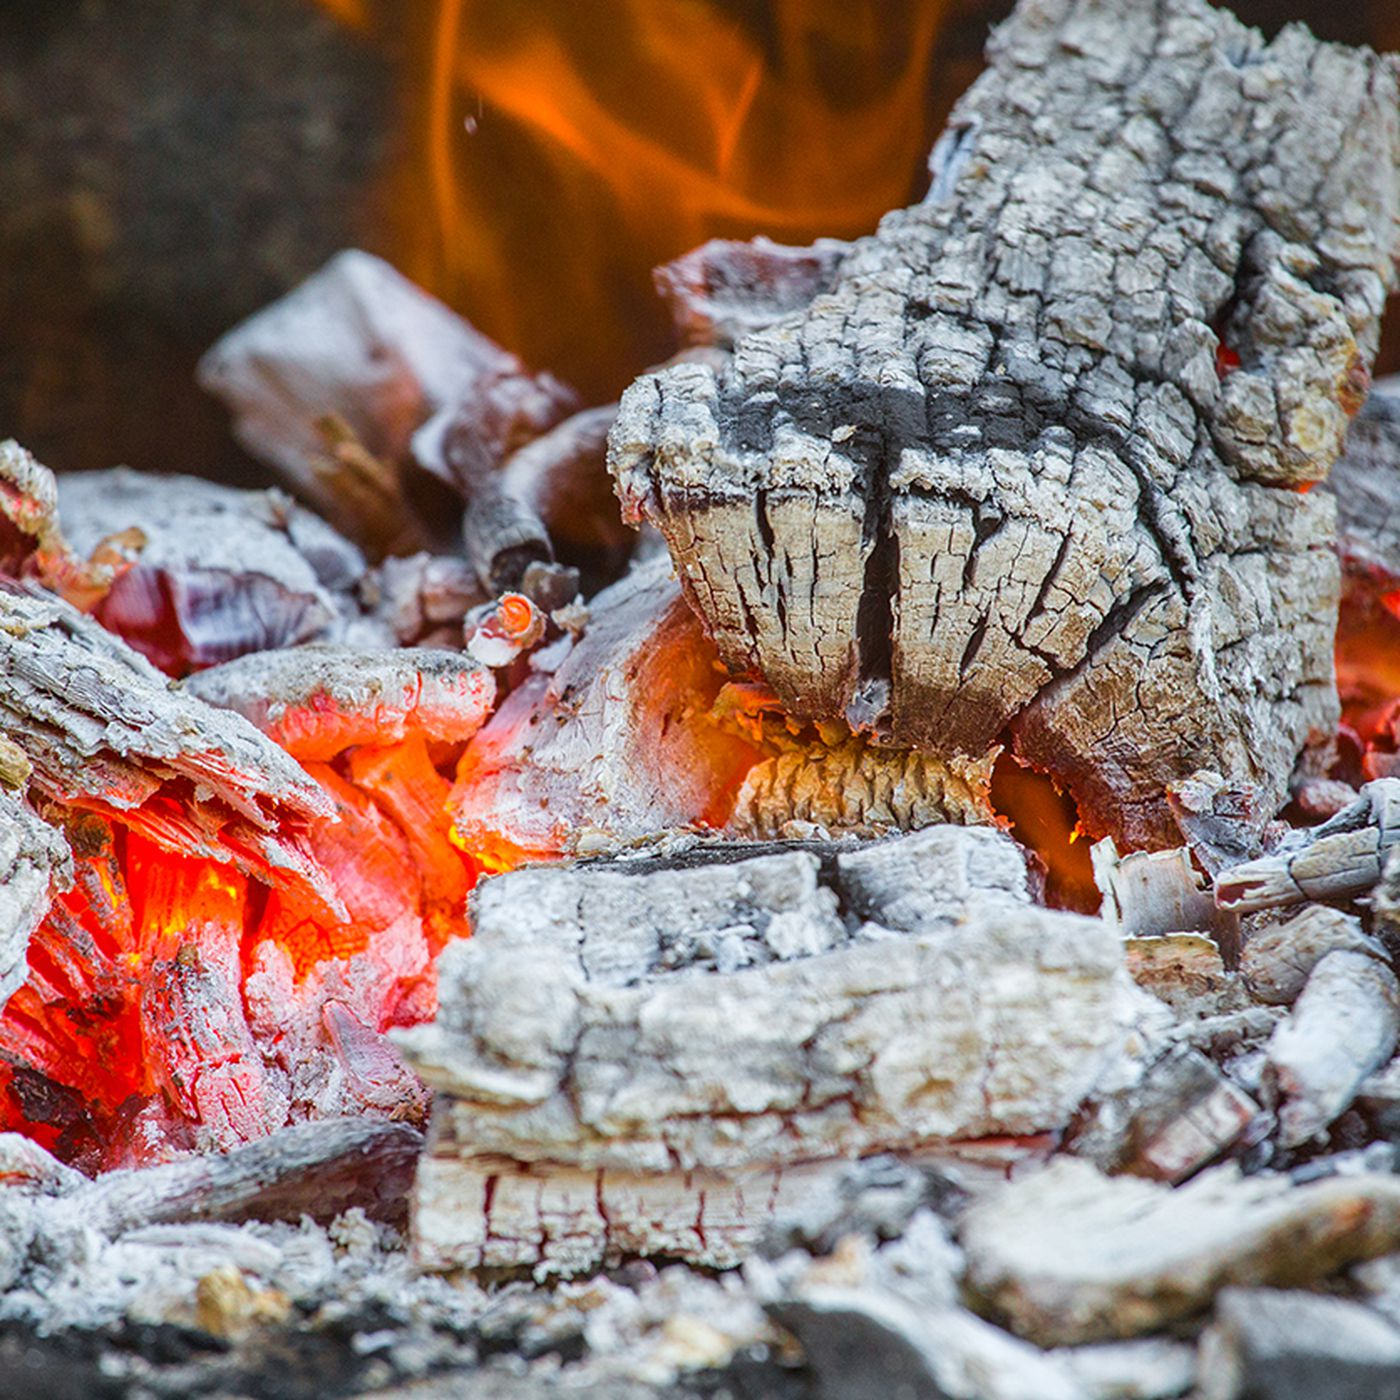 8 Uses For Wood Ash In Your Home Garden And Plants This Old House